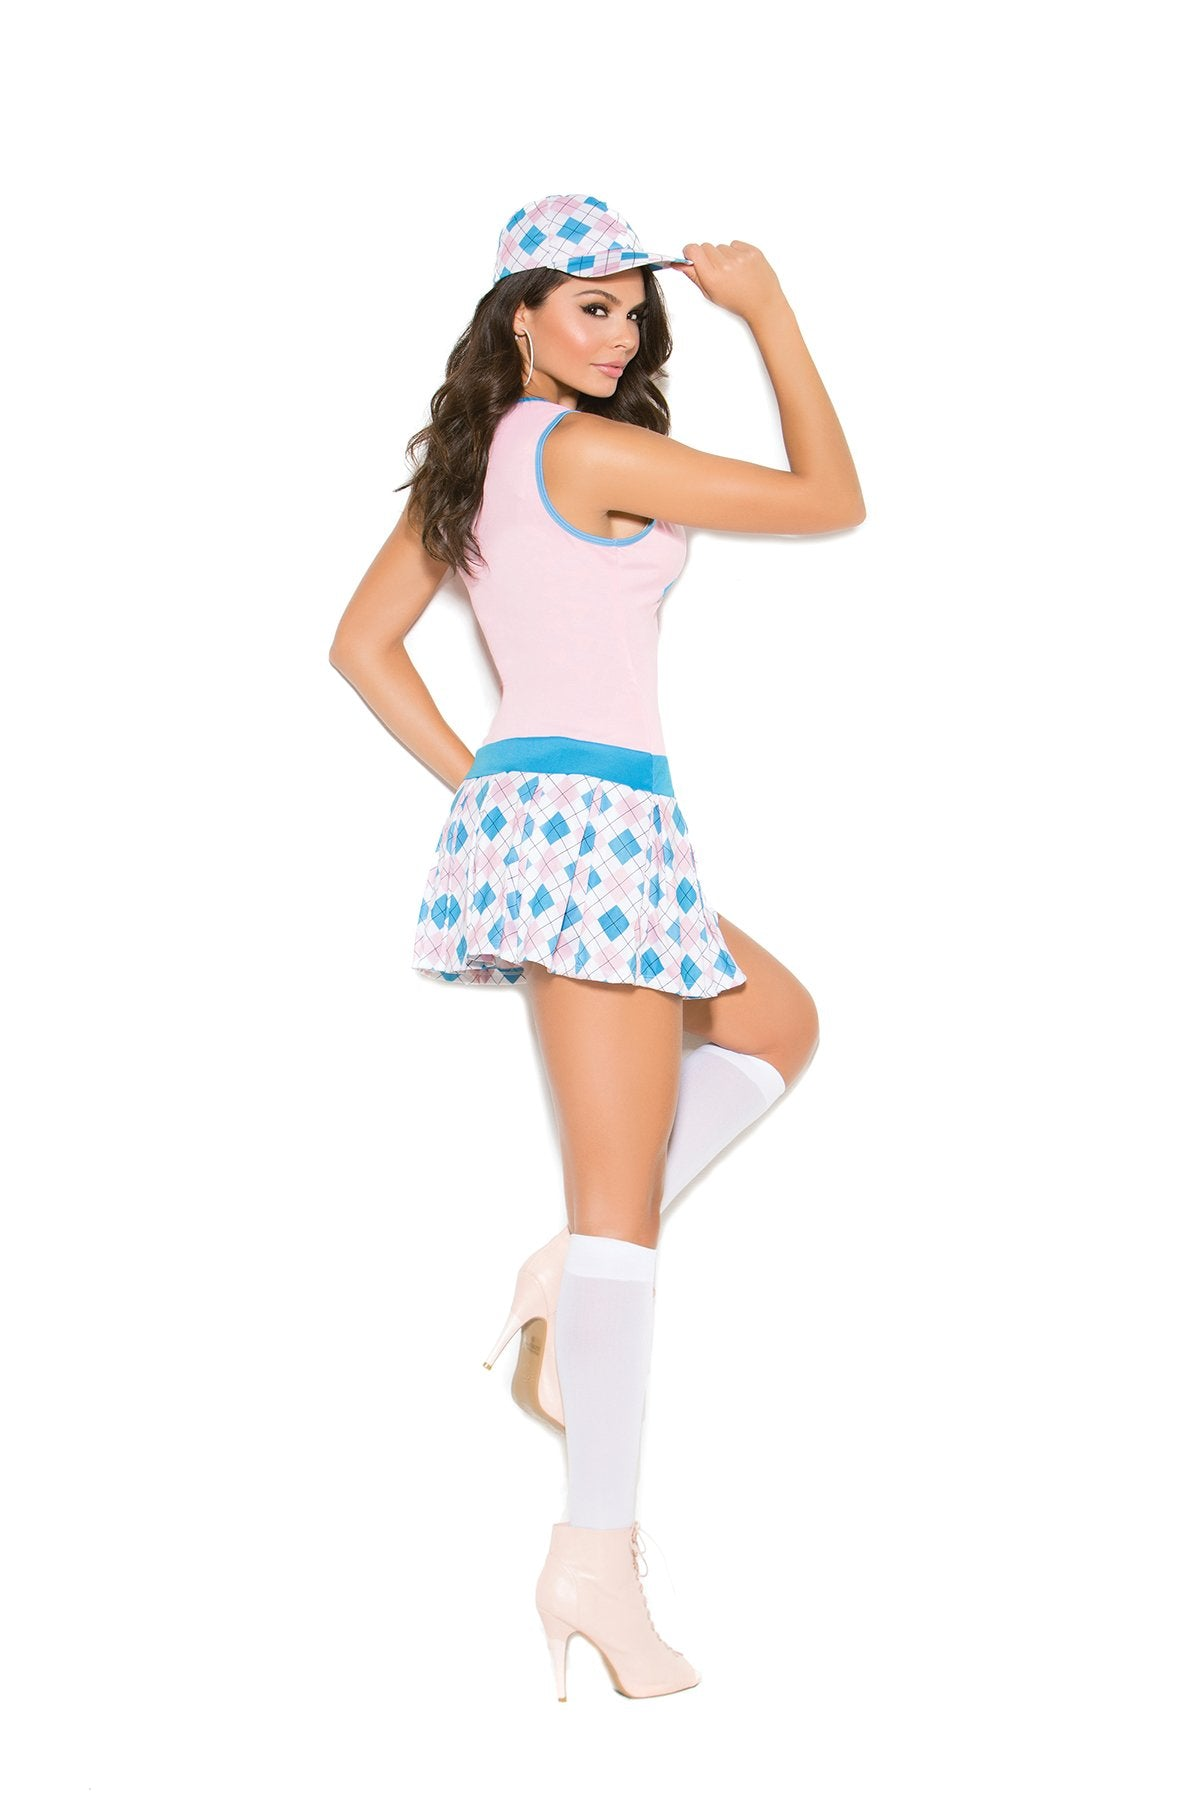 Golf Tease Costume-costumes-Elegant Moments-1X/2X-pink-Nakees